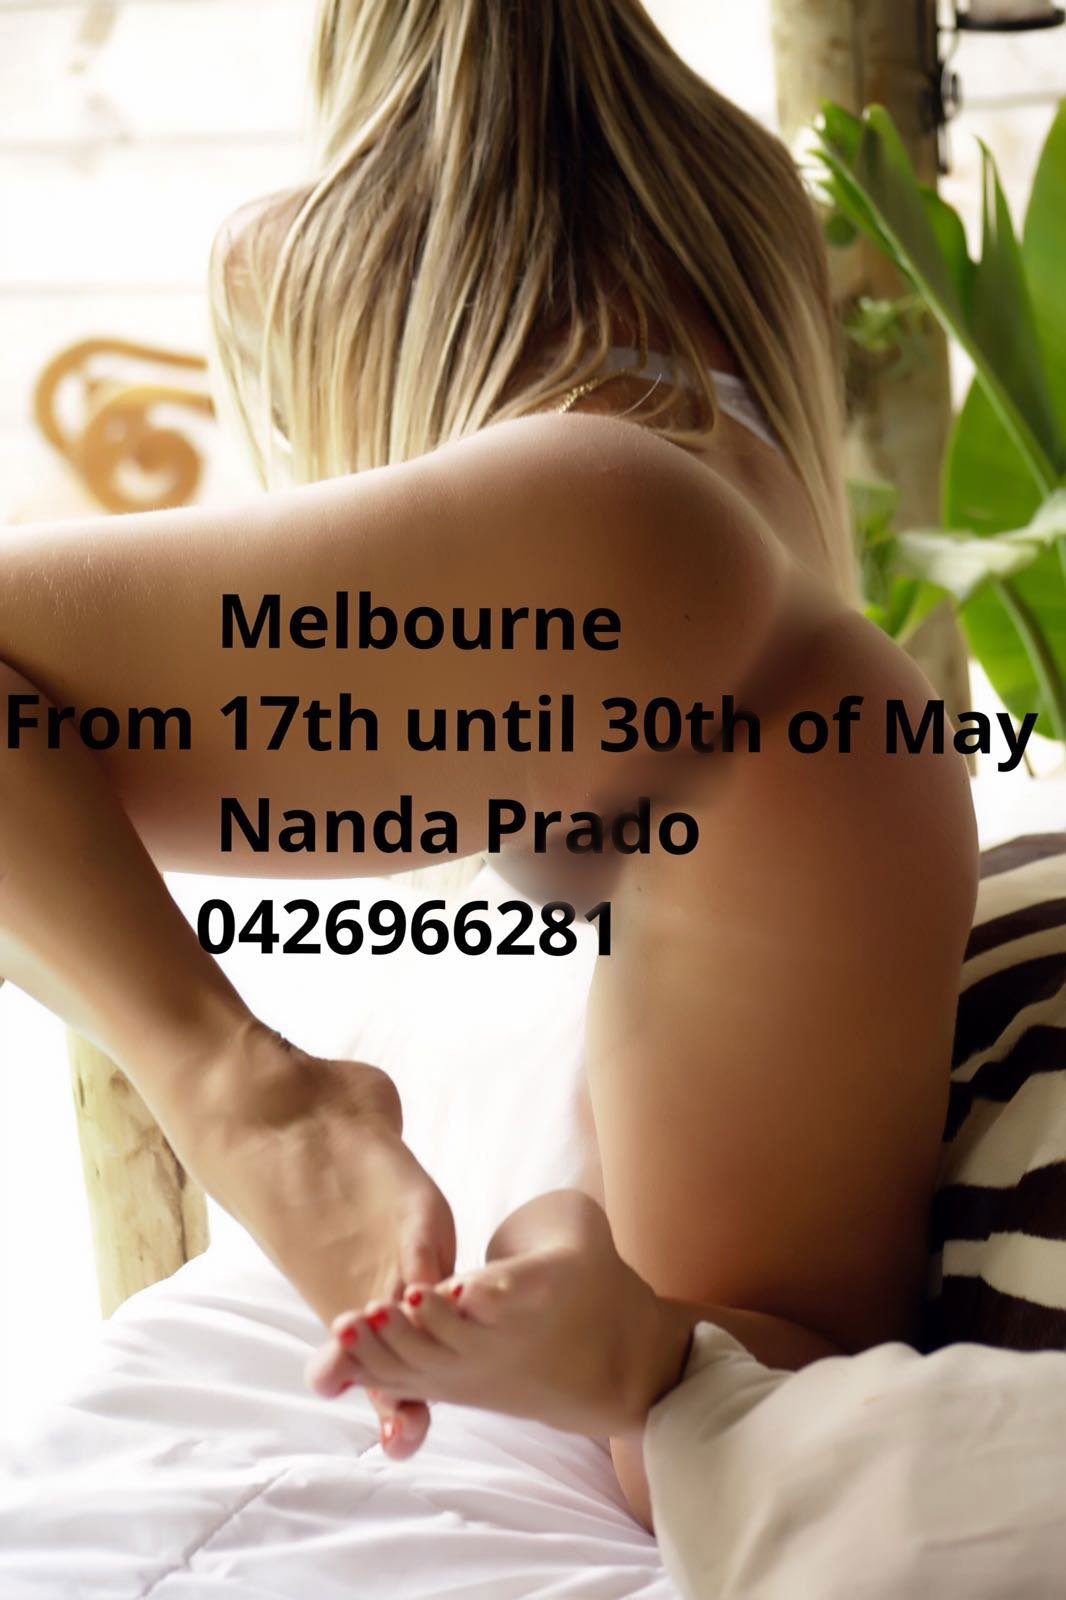 The Hottest Brazilian Girl In Melbourne From 17th Until 29th of May